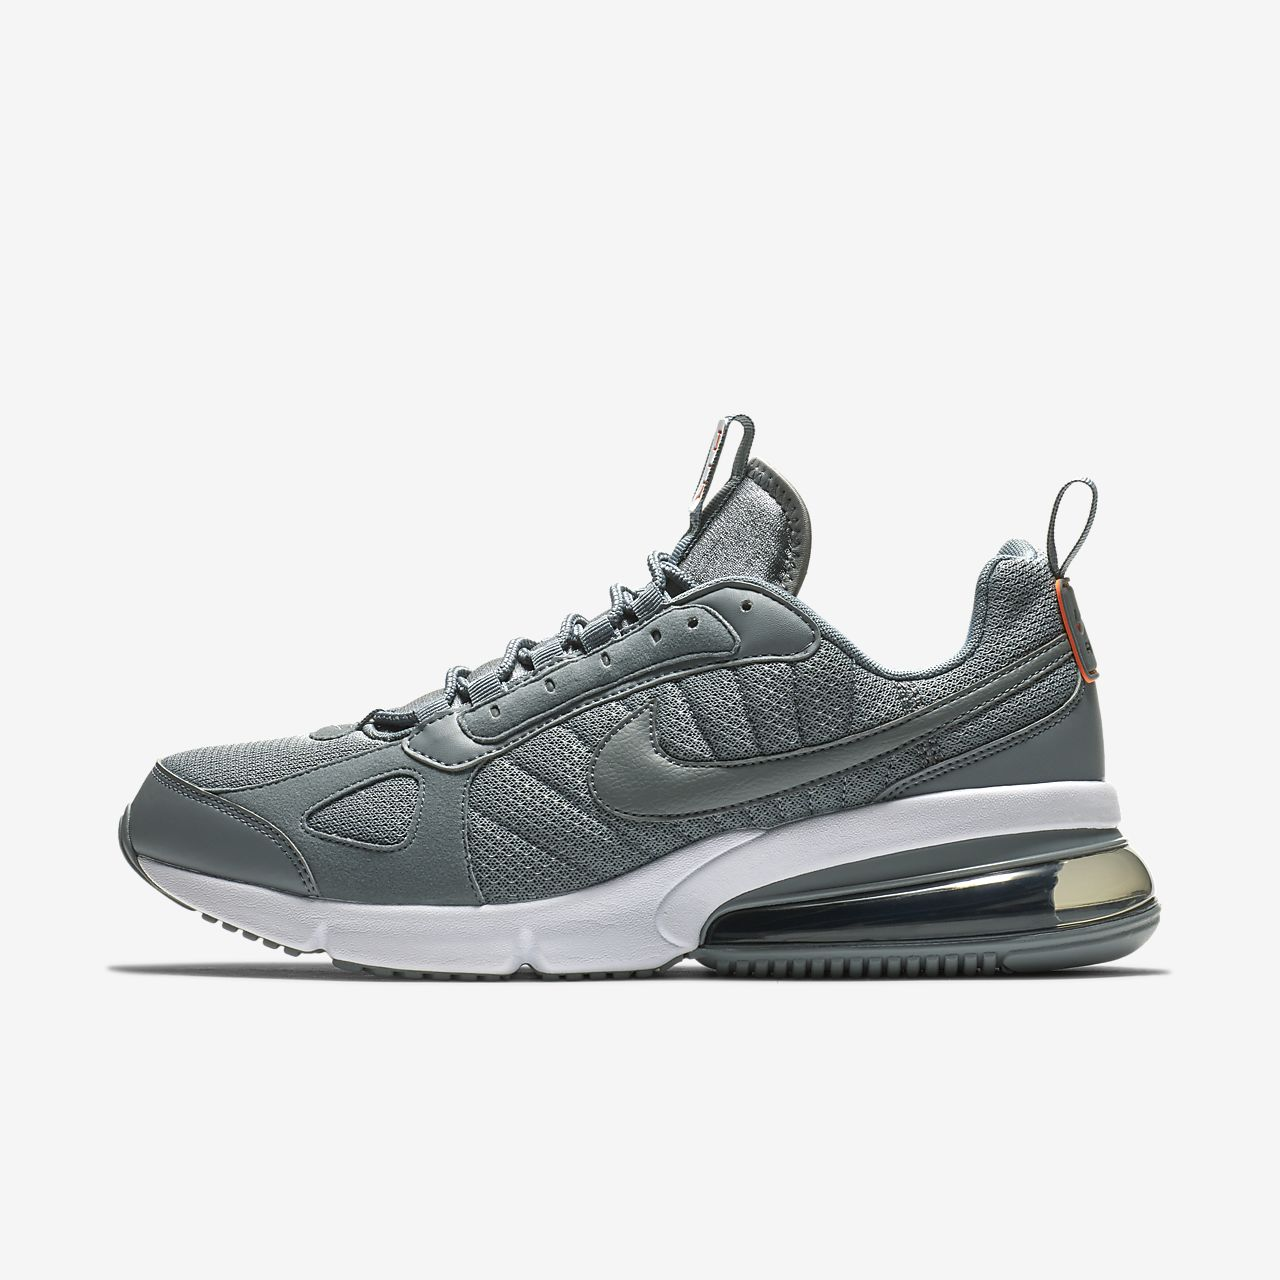 finest selection 729e2 b9a48 ... Chaussure Nike Air Max 270 Futura pour Homme